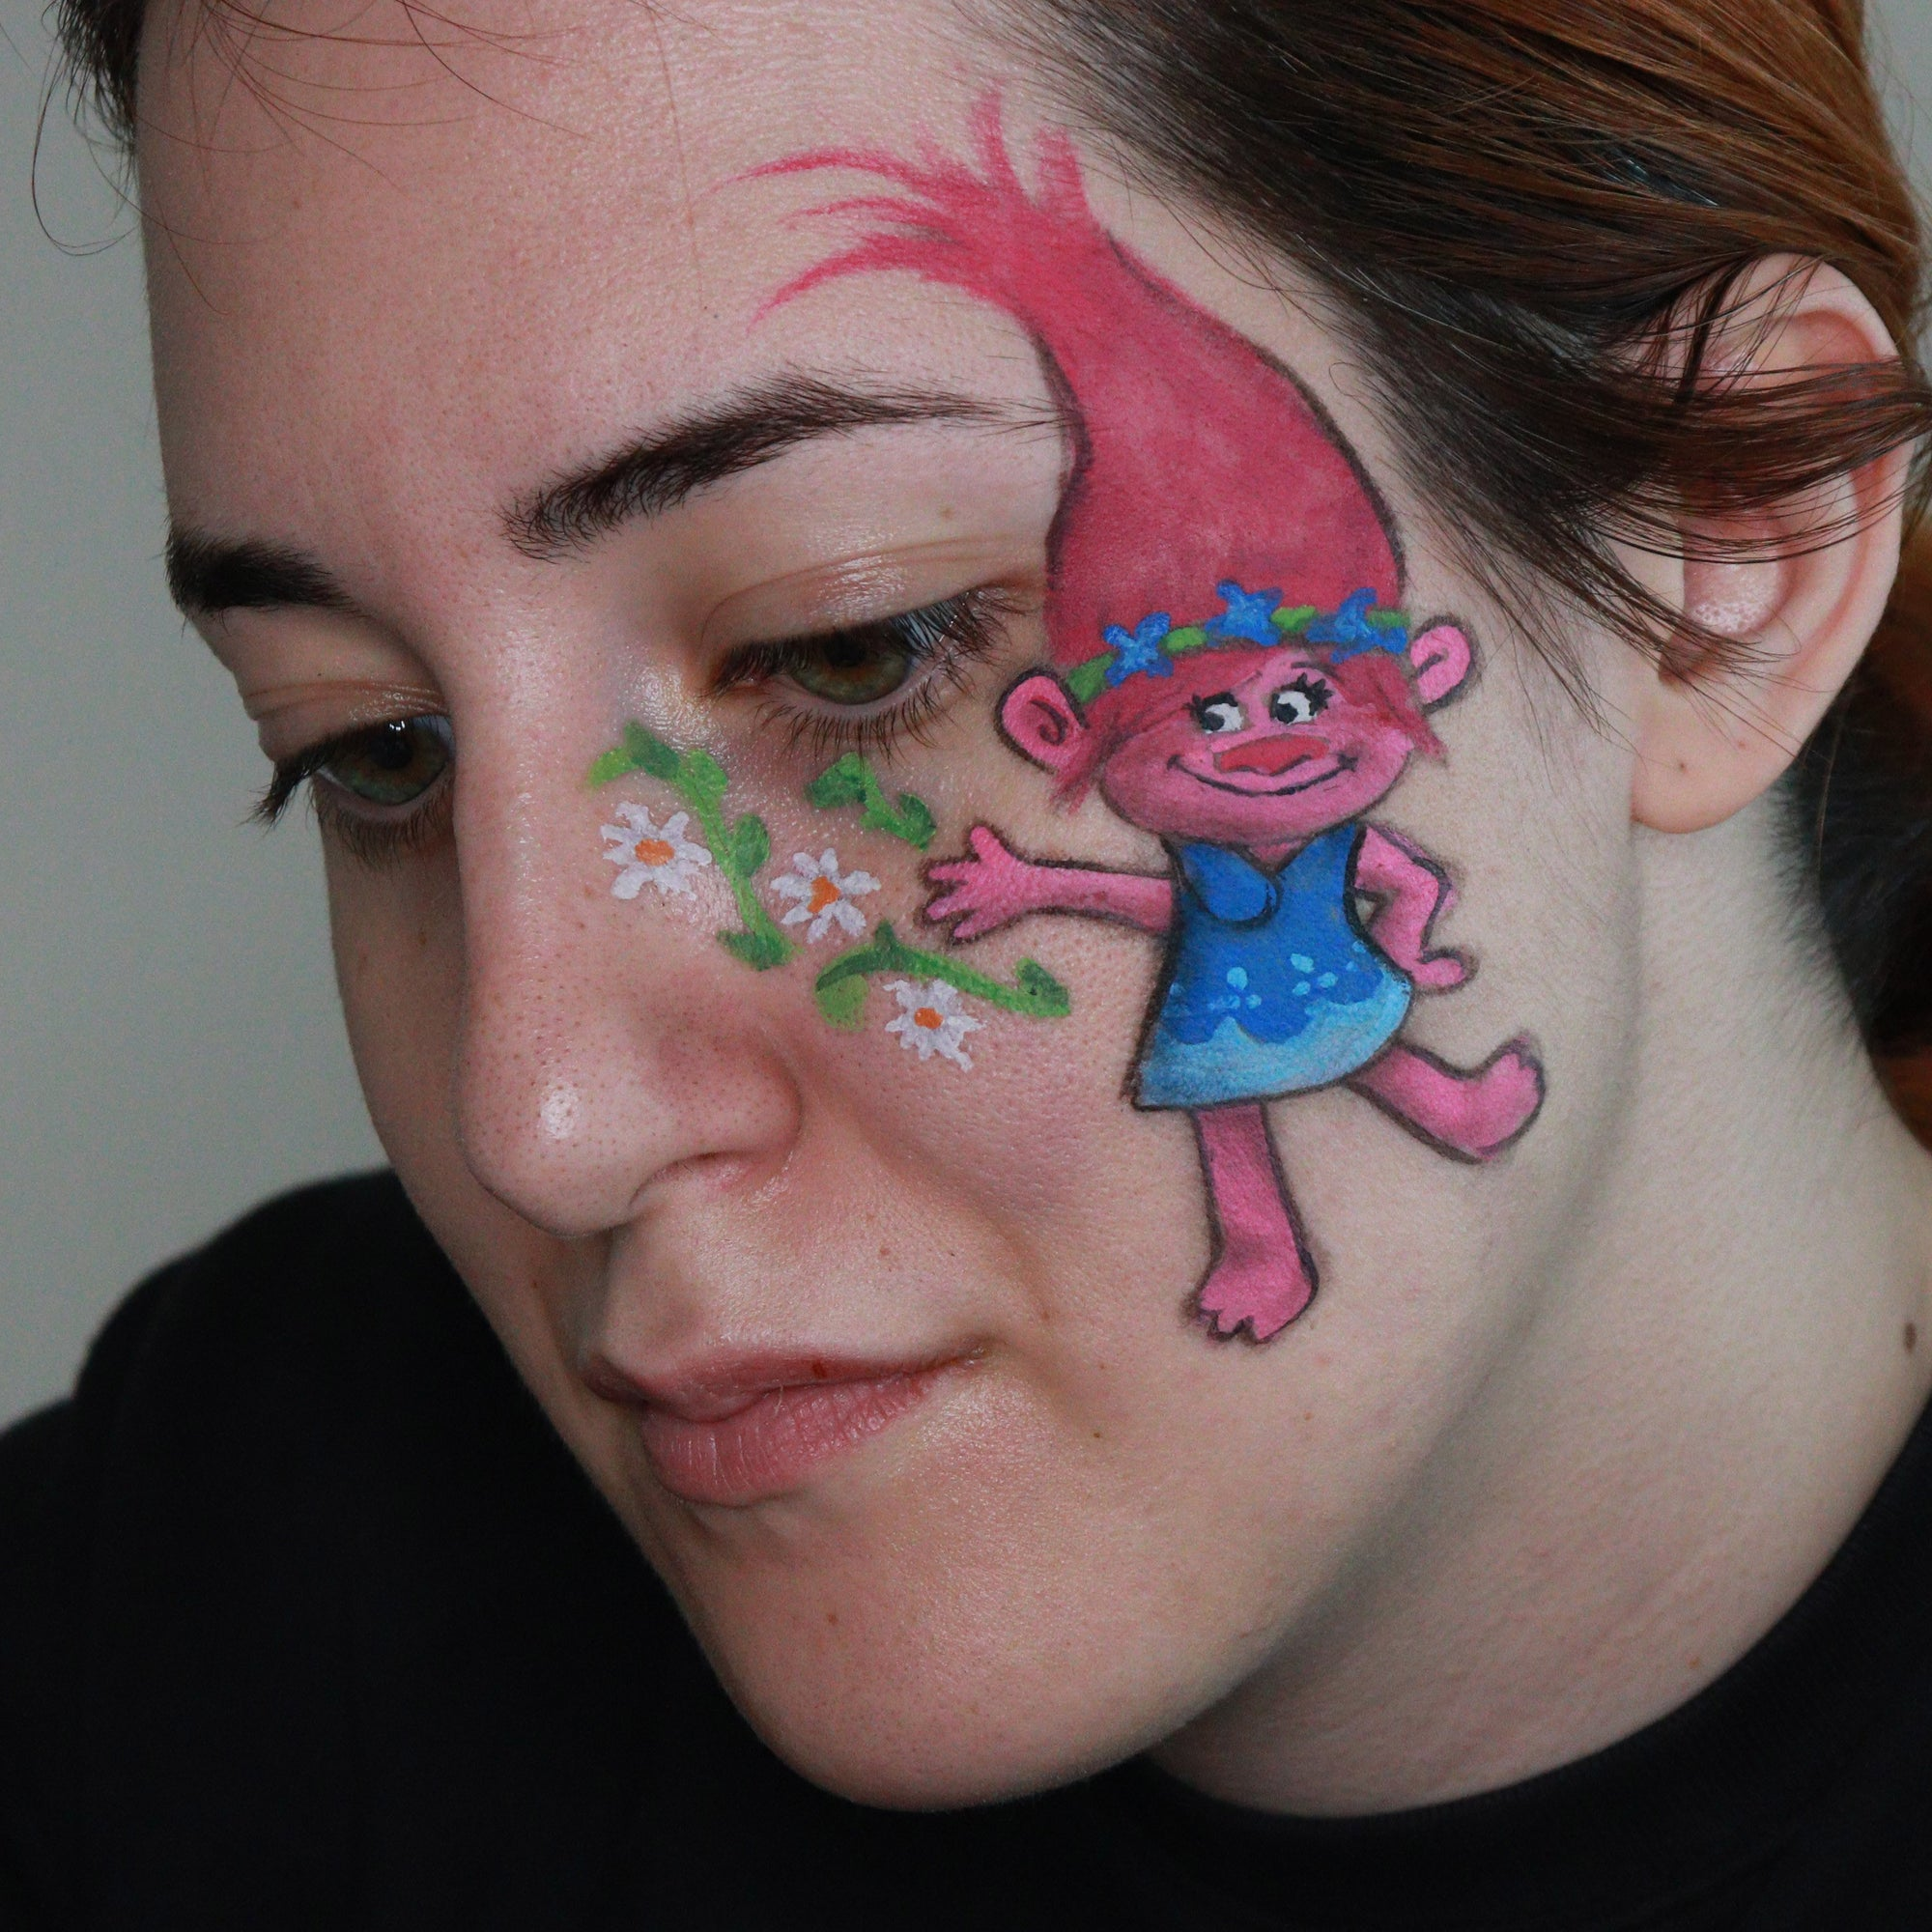 Trolls Movie Face Paint Design by Ana Cedoviste